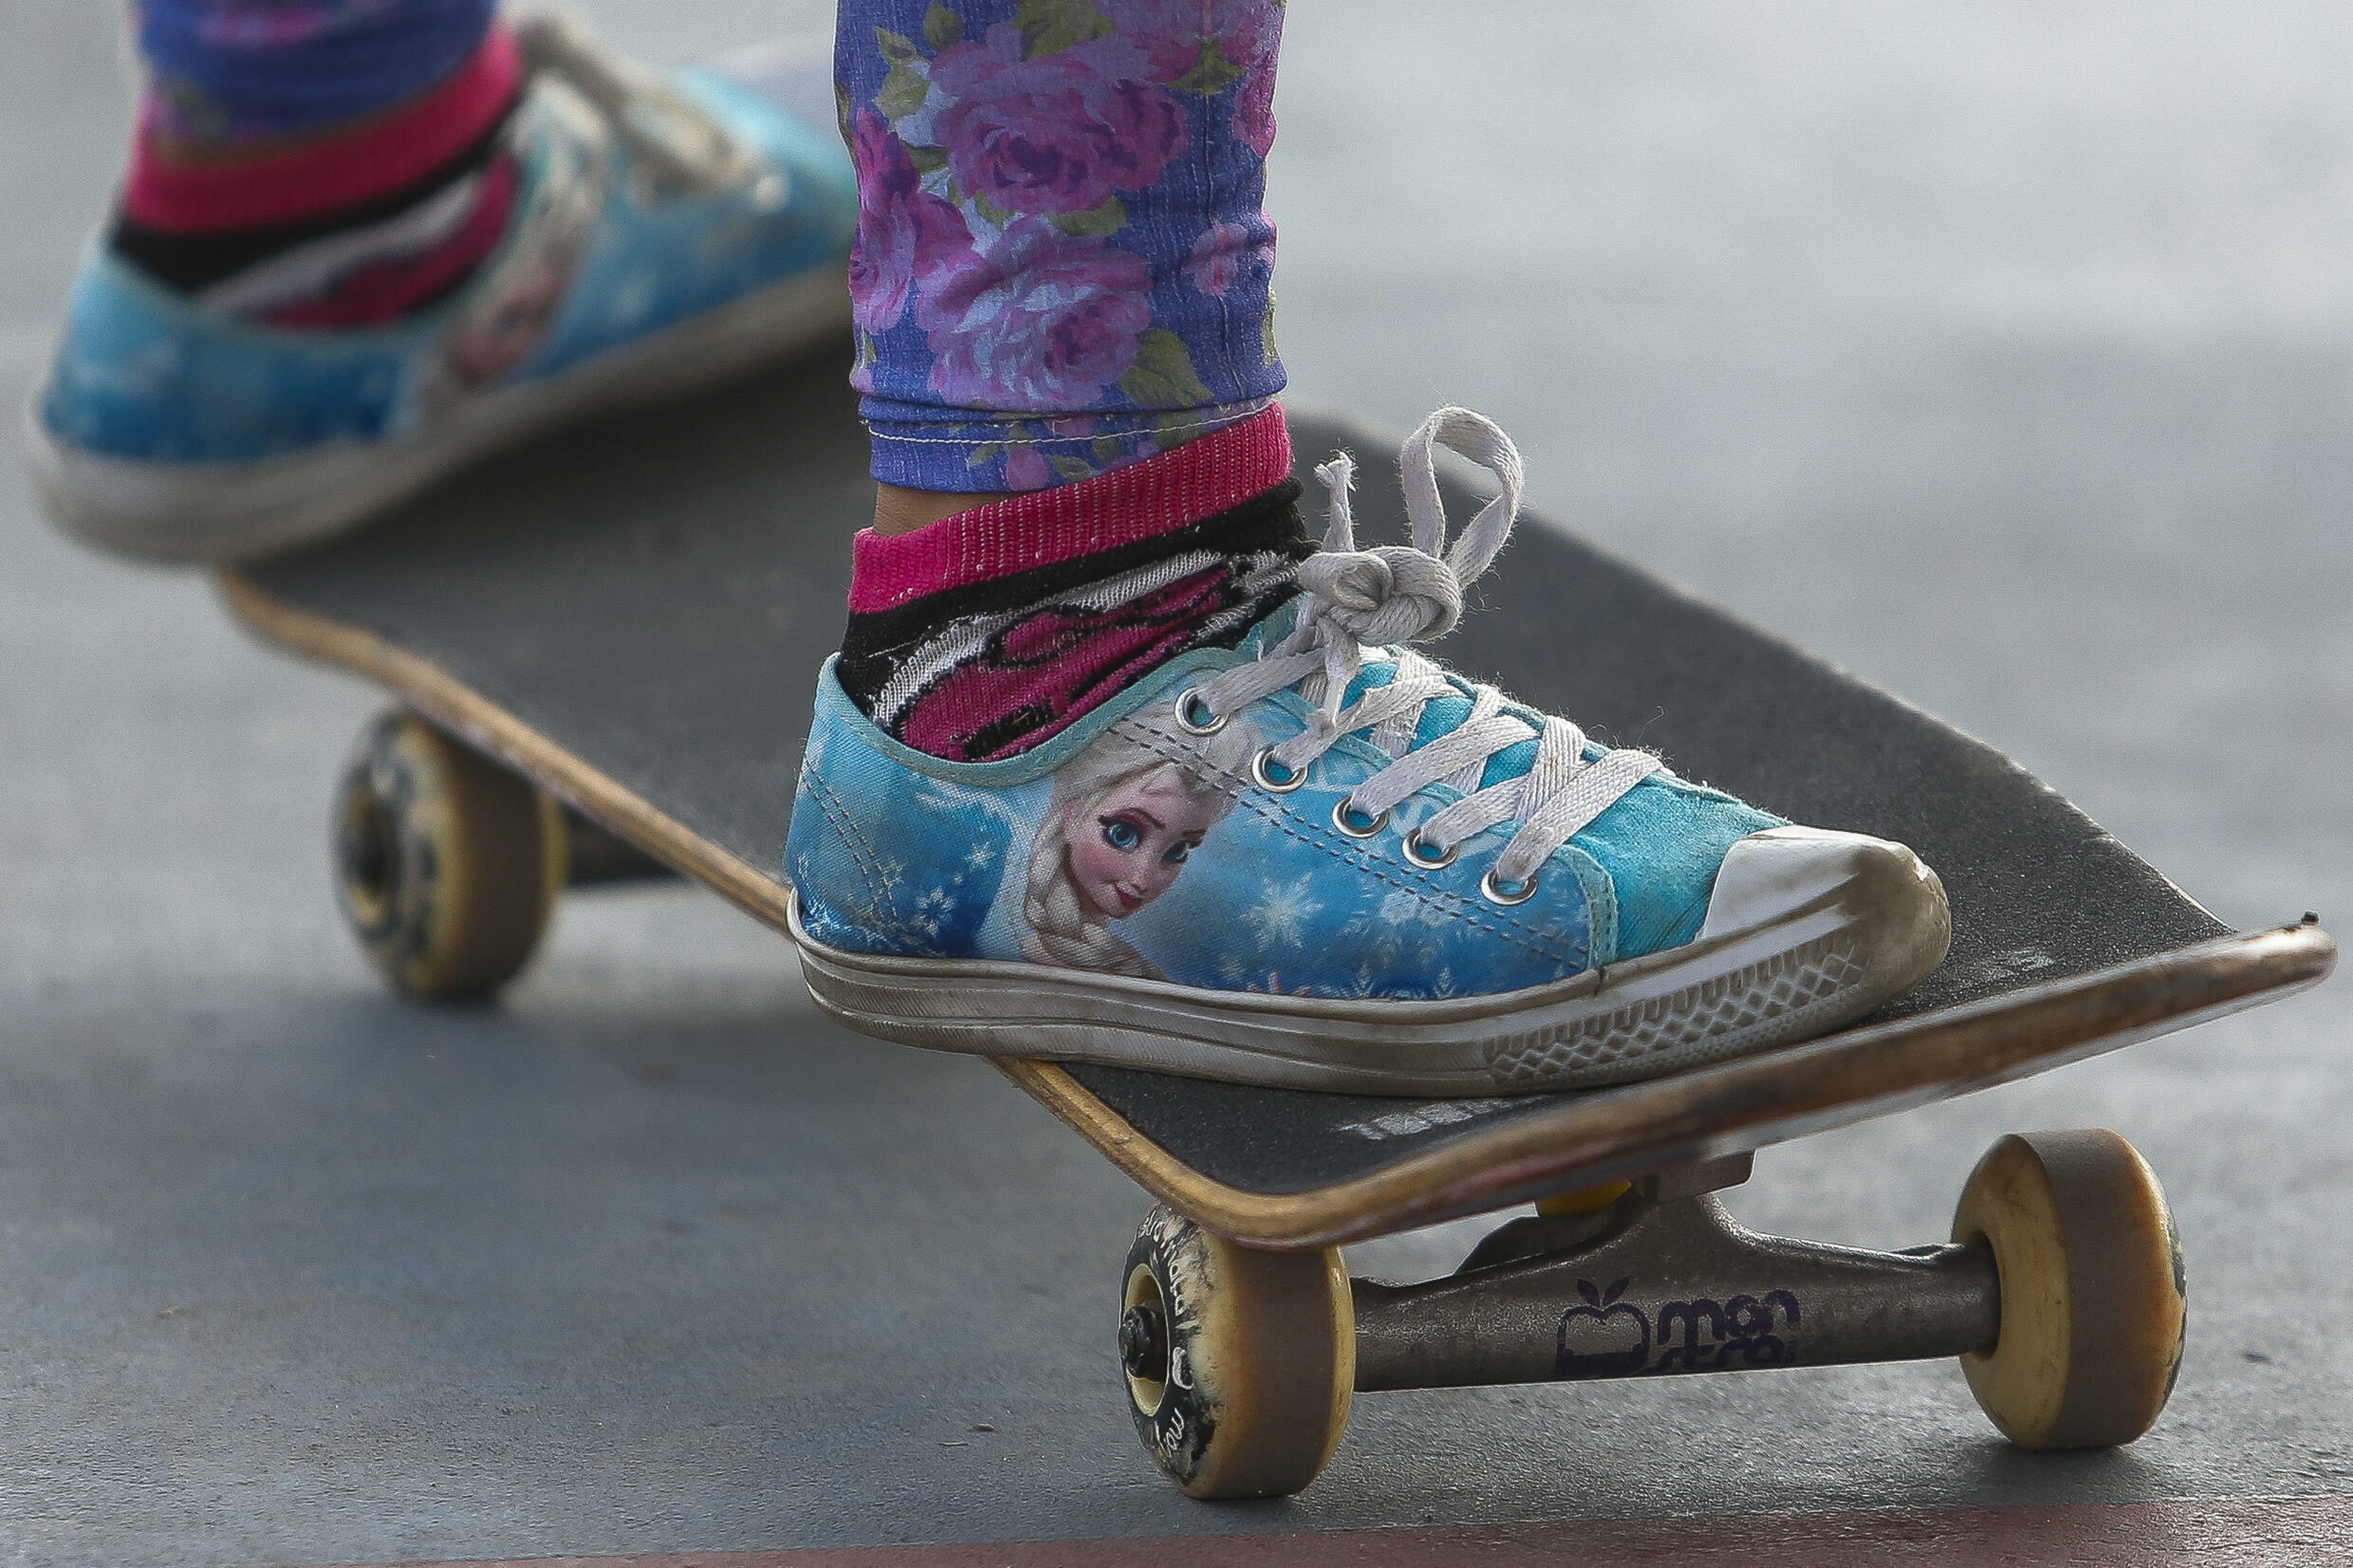 """This young girl is wearing sneakers from the Disney movie """"Frozen"""" as she skateboards"""